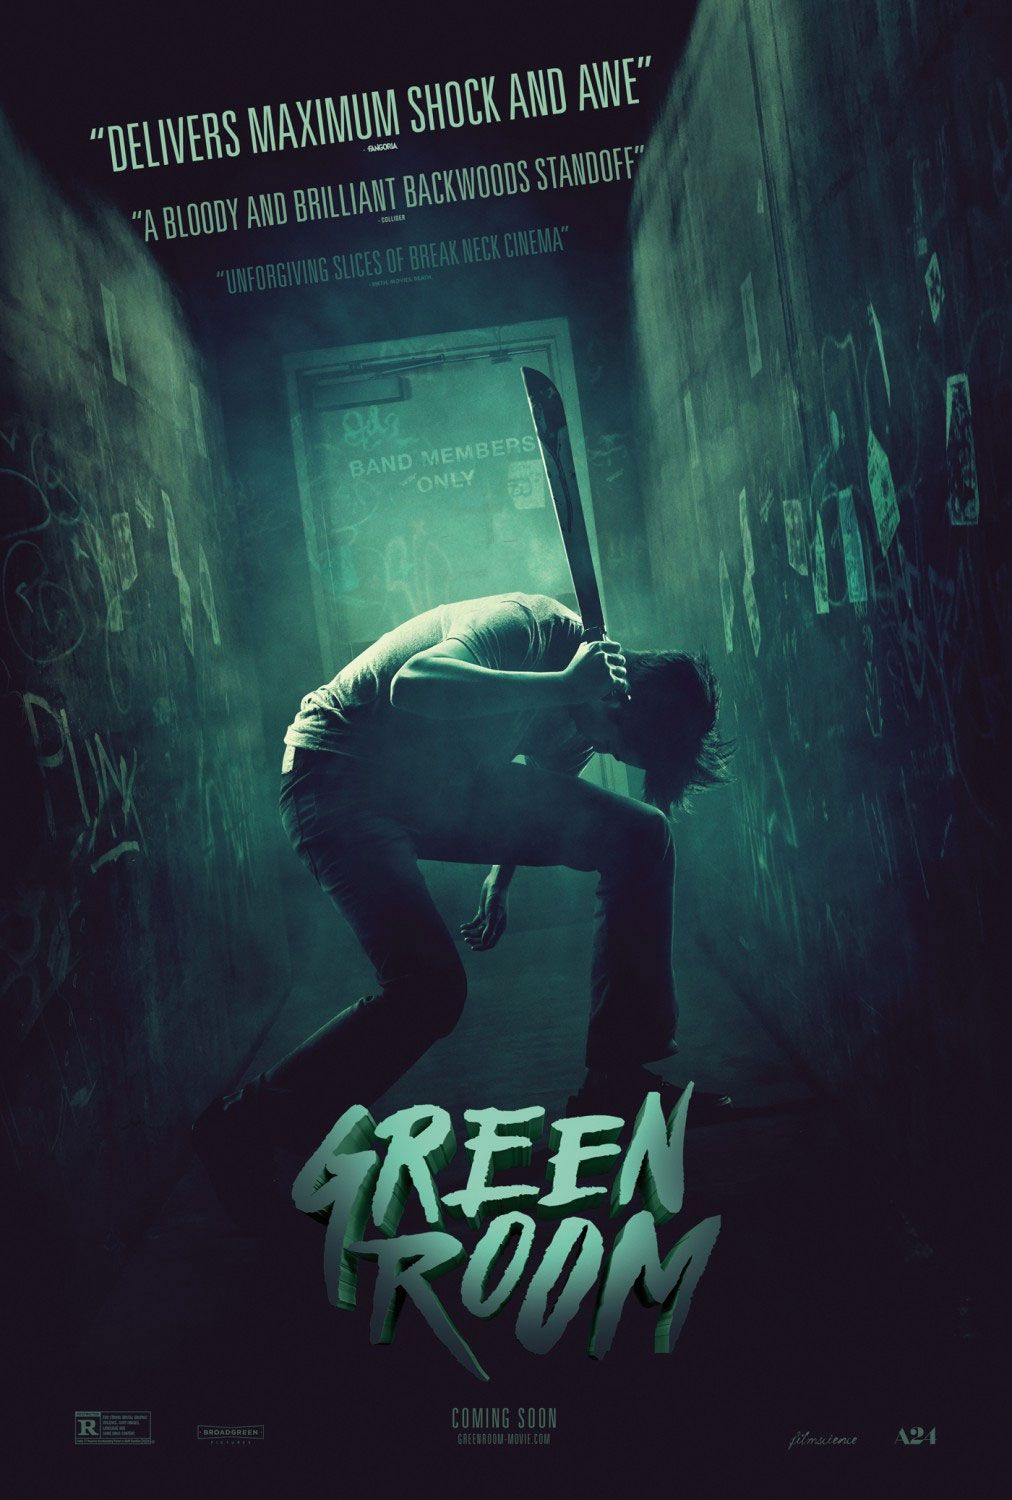 2016 Green Room Green room movie, Green rooms, Good movies